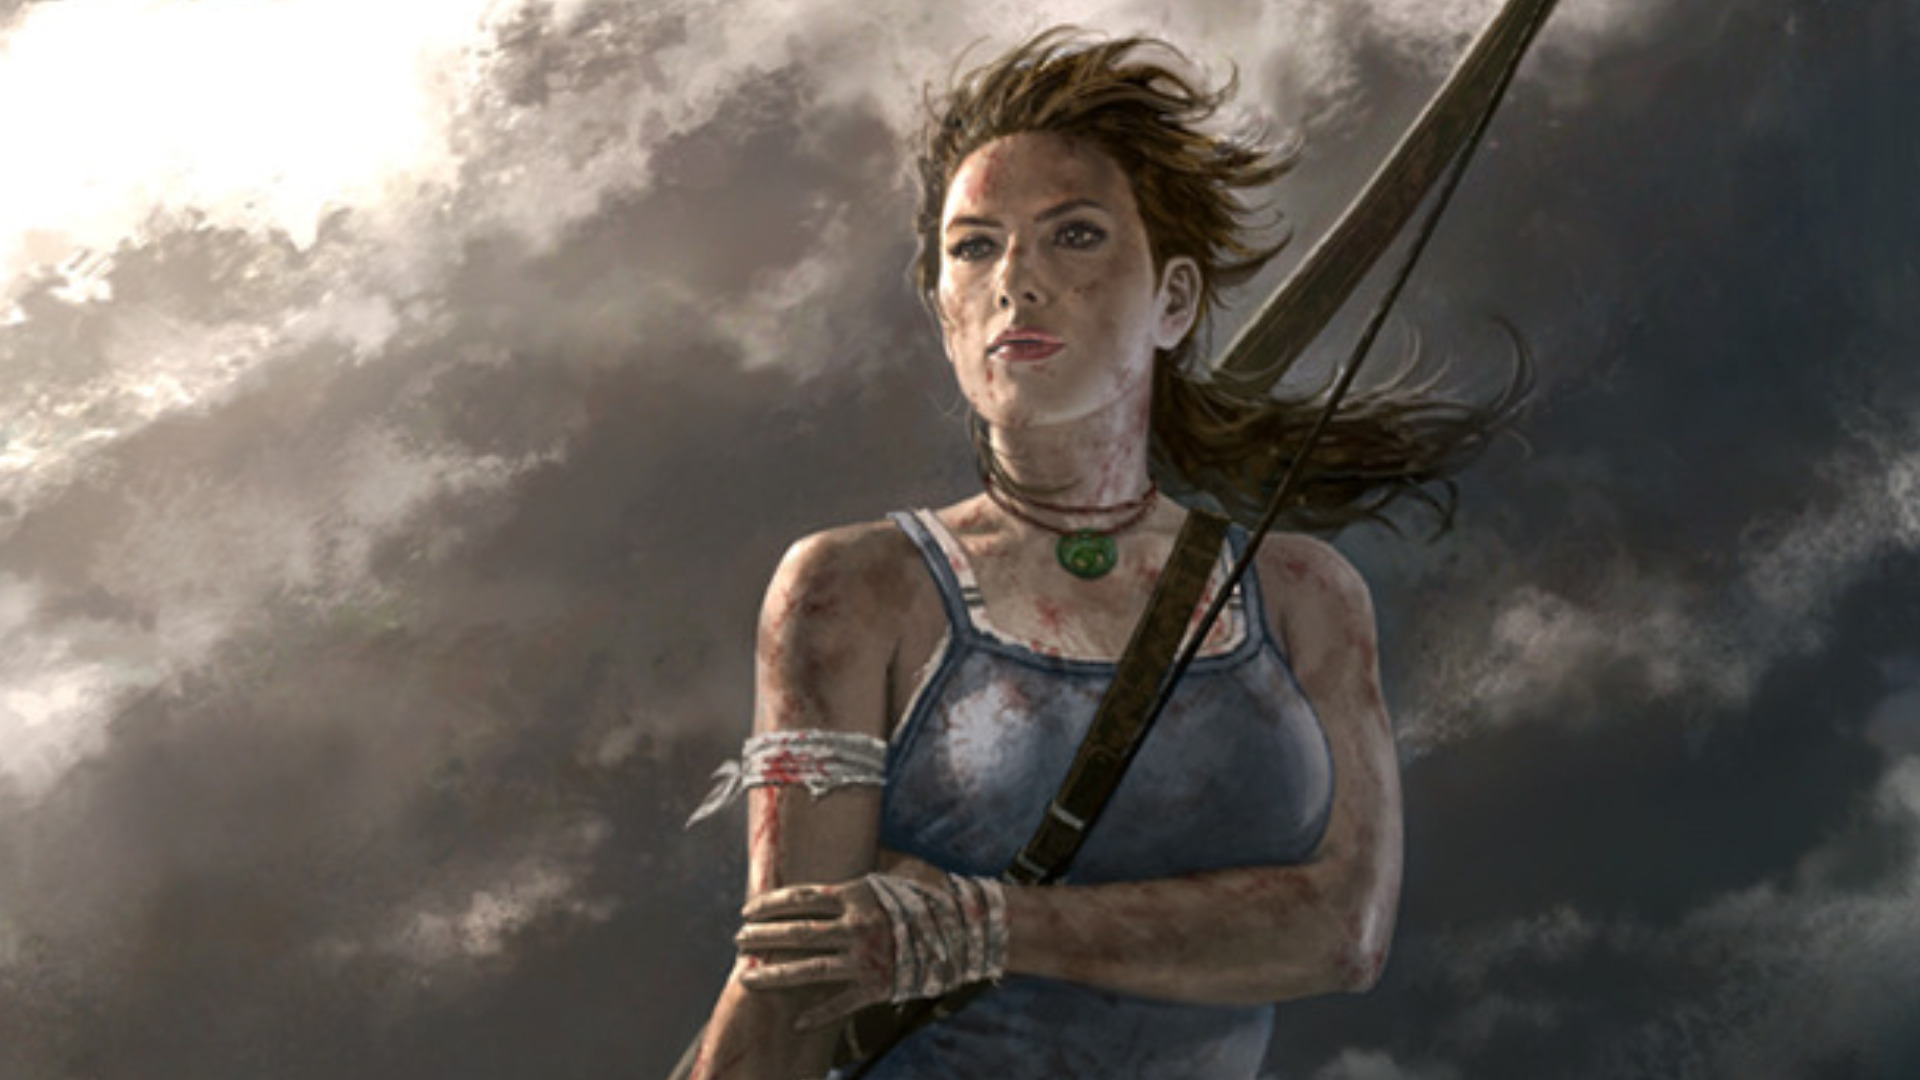 Hd Game Wallpapers For Iphone 6 Tomb Raider Computer Wallpapers Desktop Backgrounds